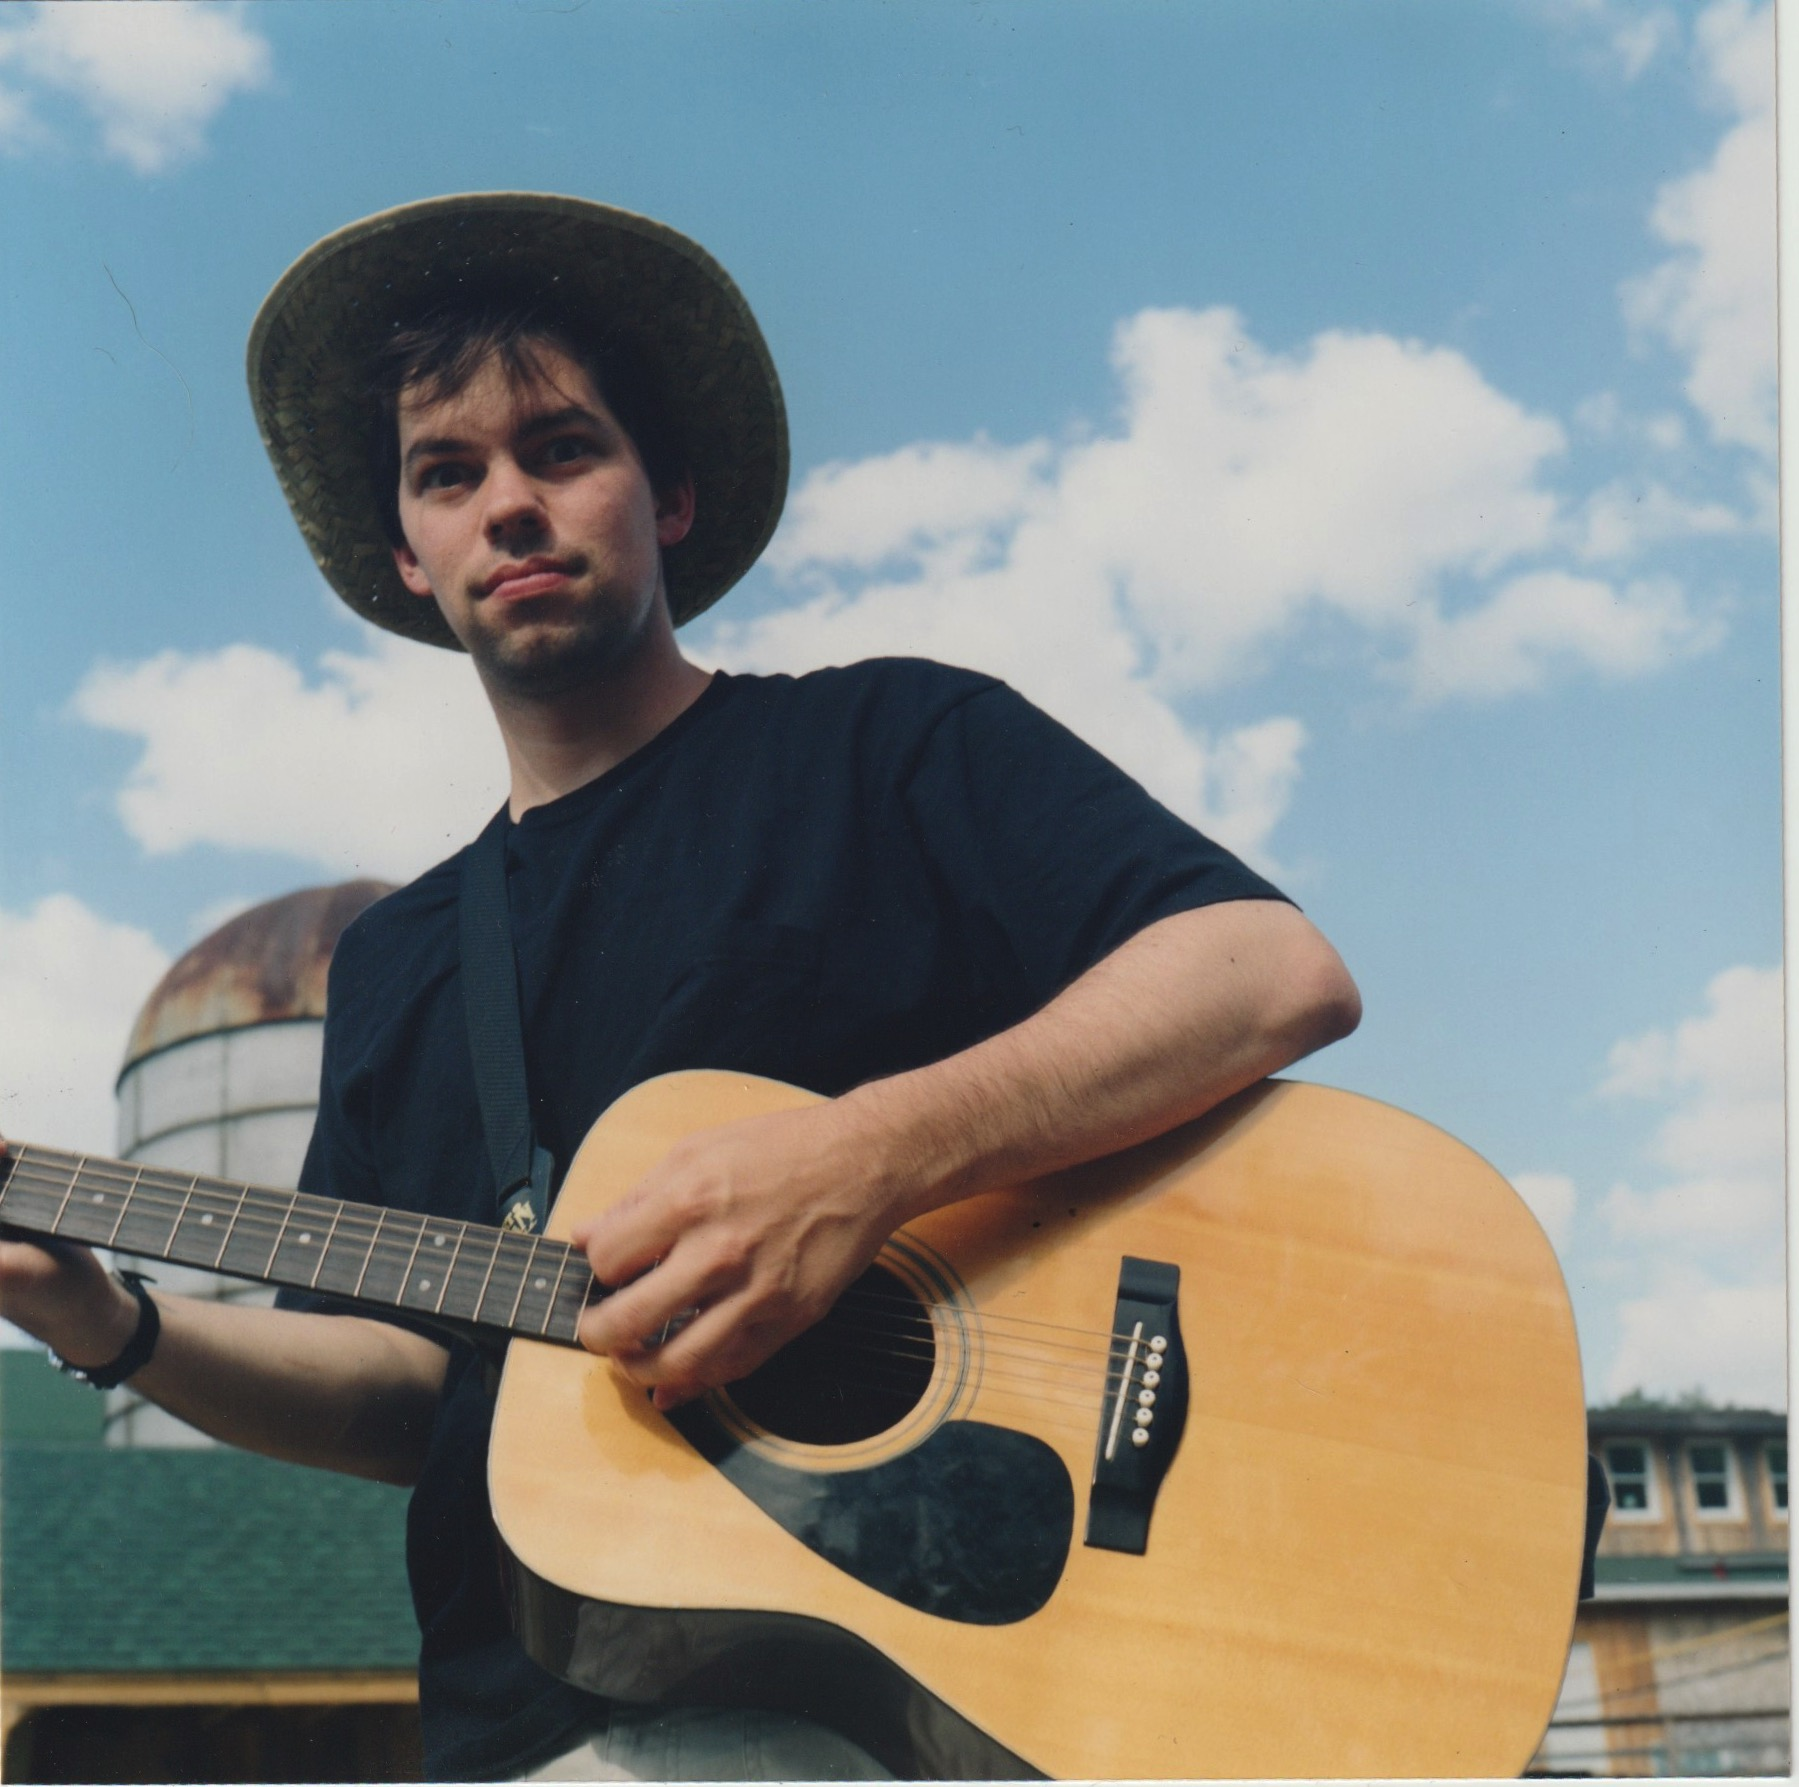 David Rhoden with an acoustic guitar in Deposit New York